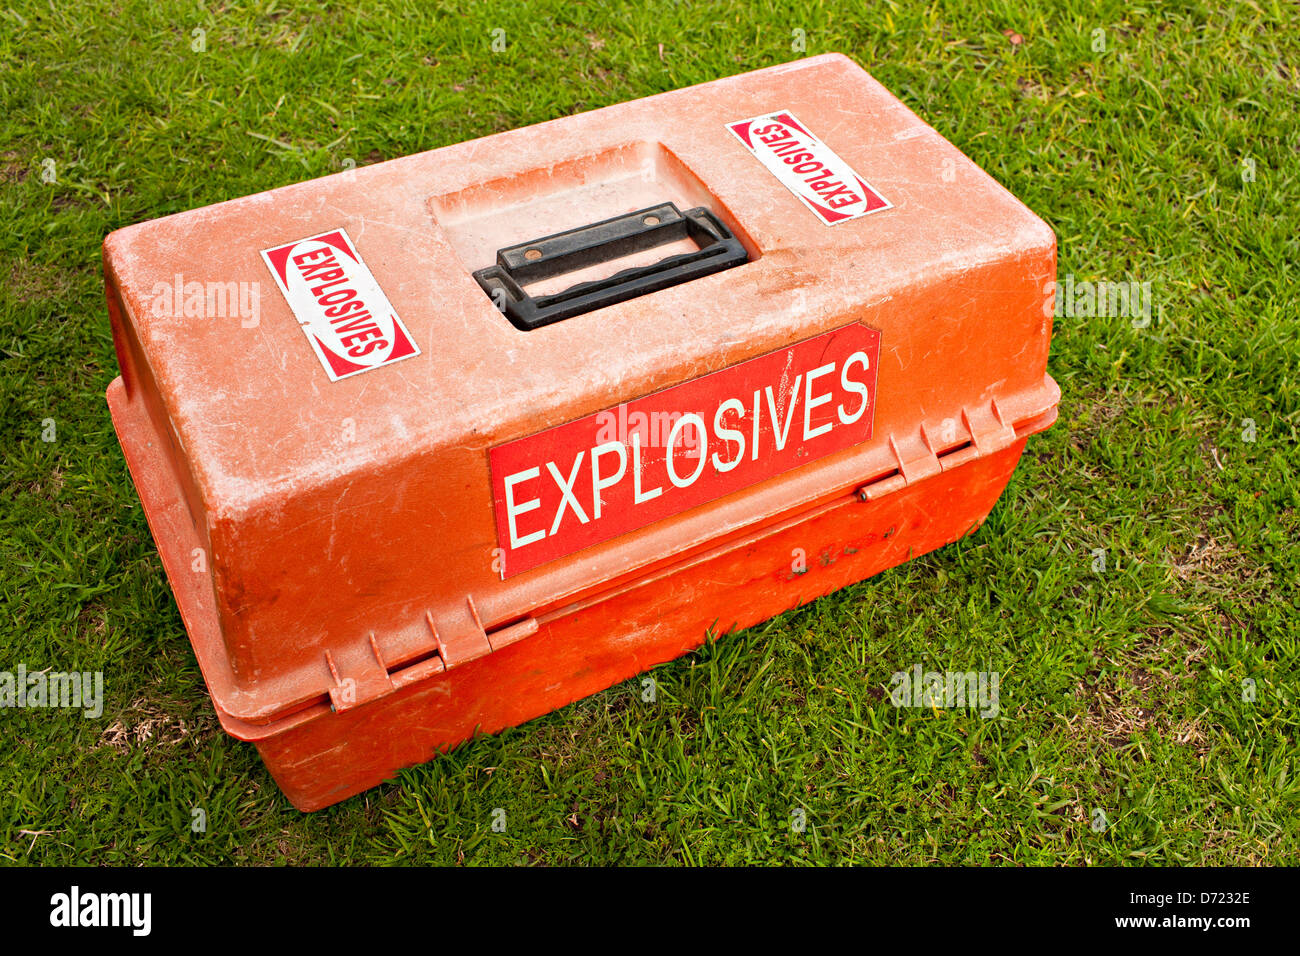 A box of explosives - Stock Image